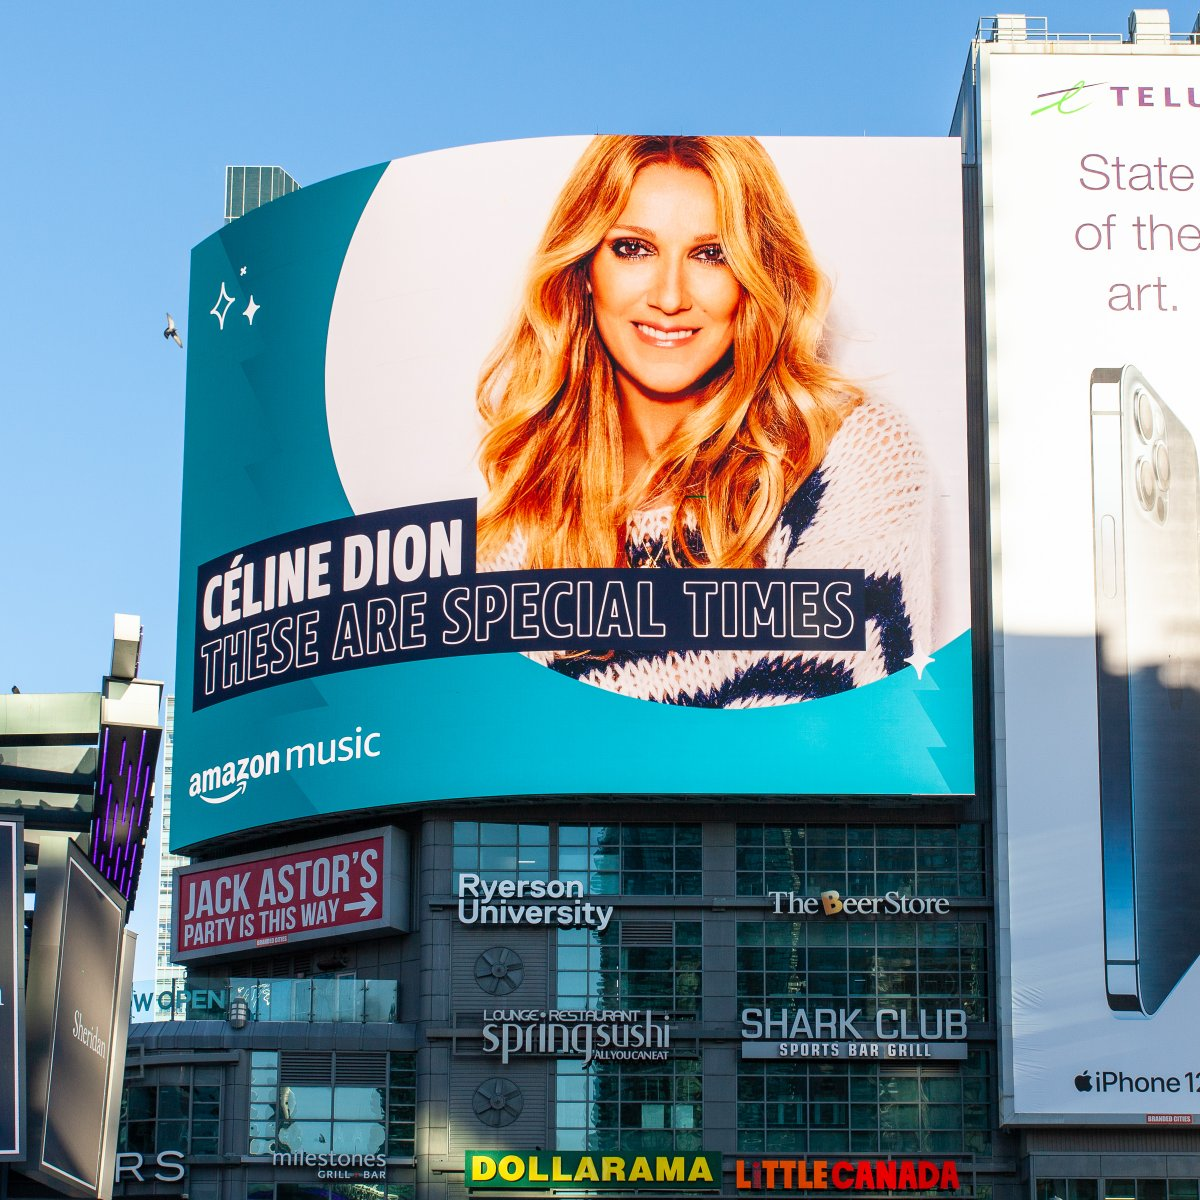 Christmas is in the air, and Celine is in the streets of Toronto and Montreal! Thank you @amazonmusic Listen to These Are Special Times (including a new track)   Noël est dans l'air, et Céline est dans les rues de Toronto et Montréal! Merci Amazon Music -TC